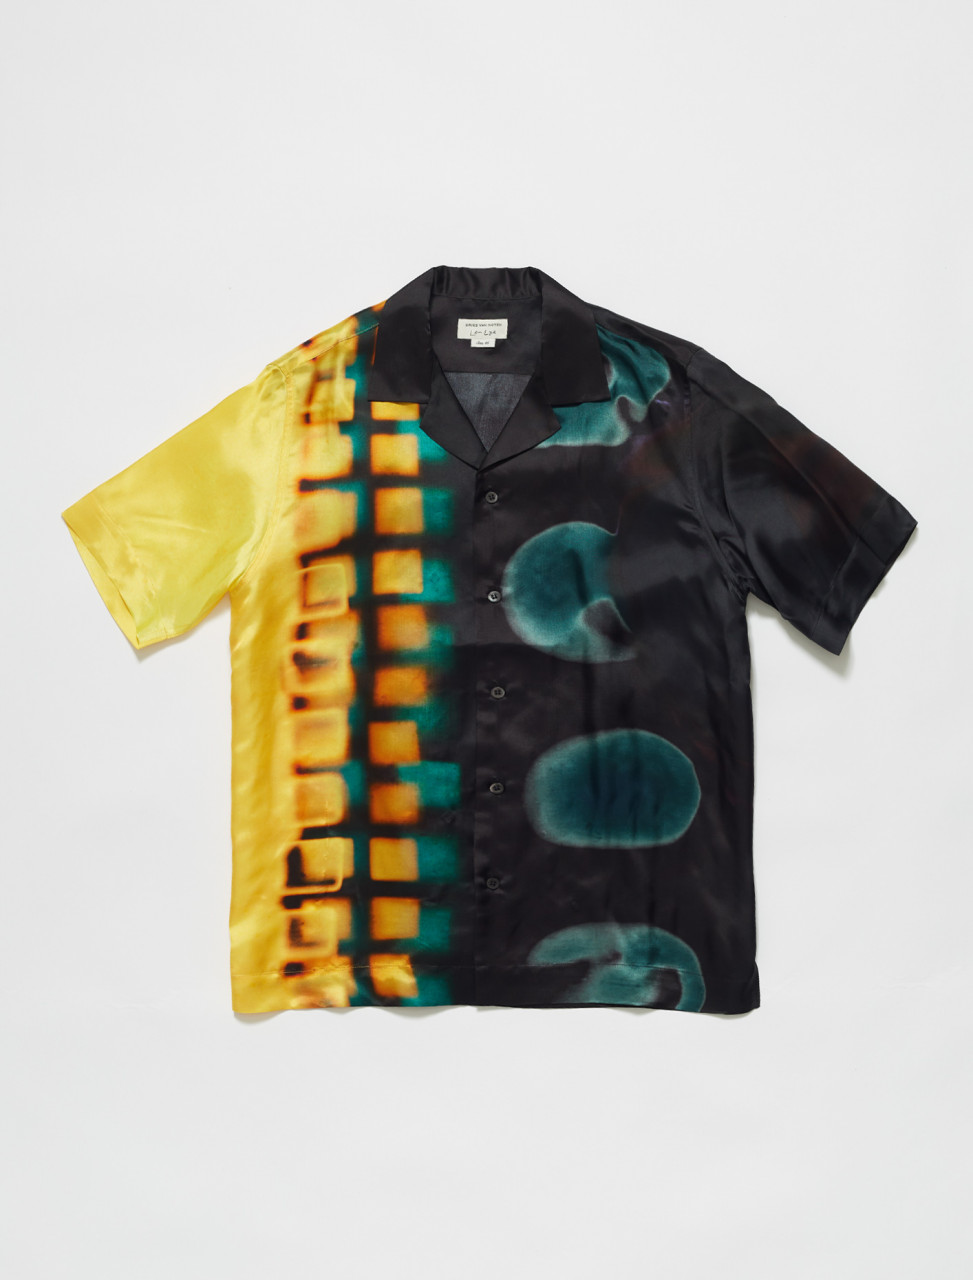 Carltone Len Lye Print Shirt in Yellow